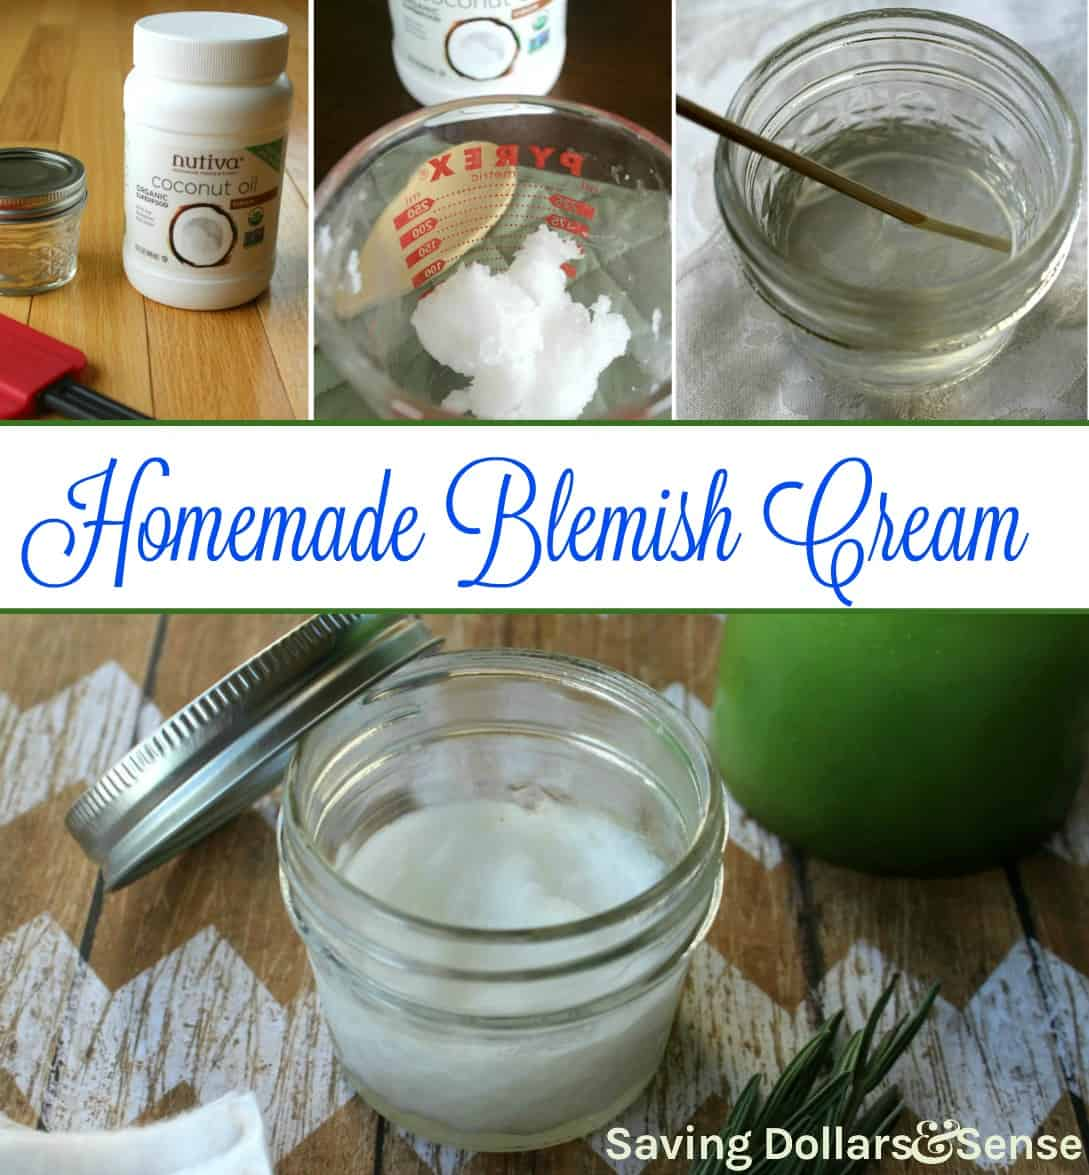 Homemade Blemish Cream